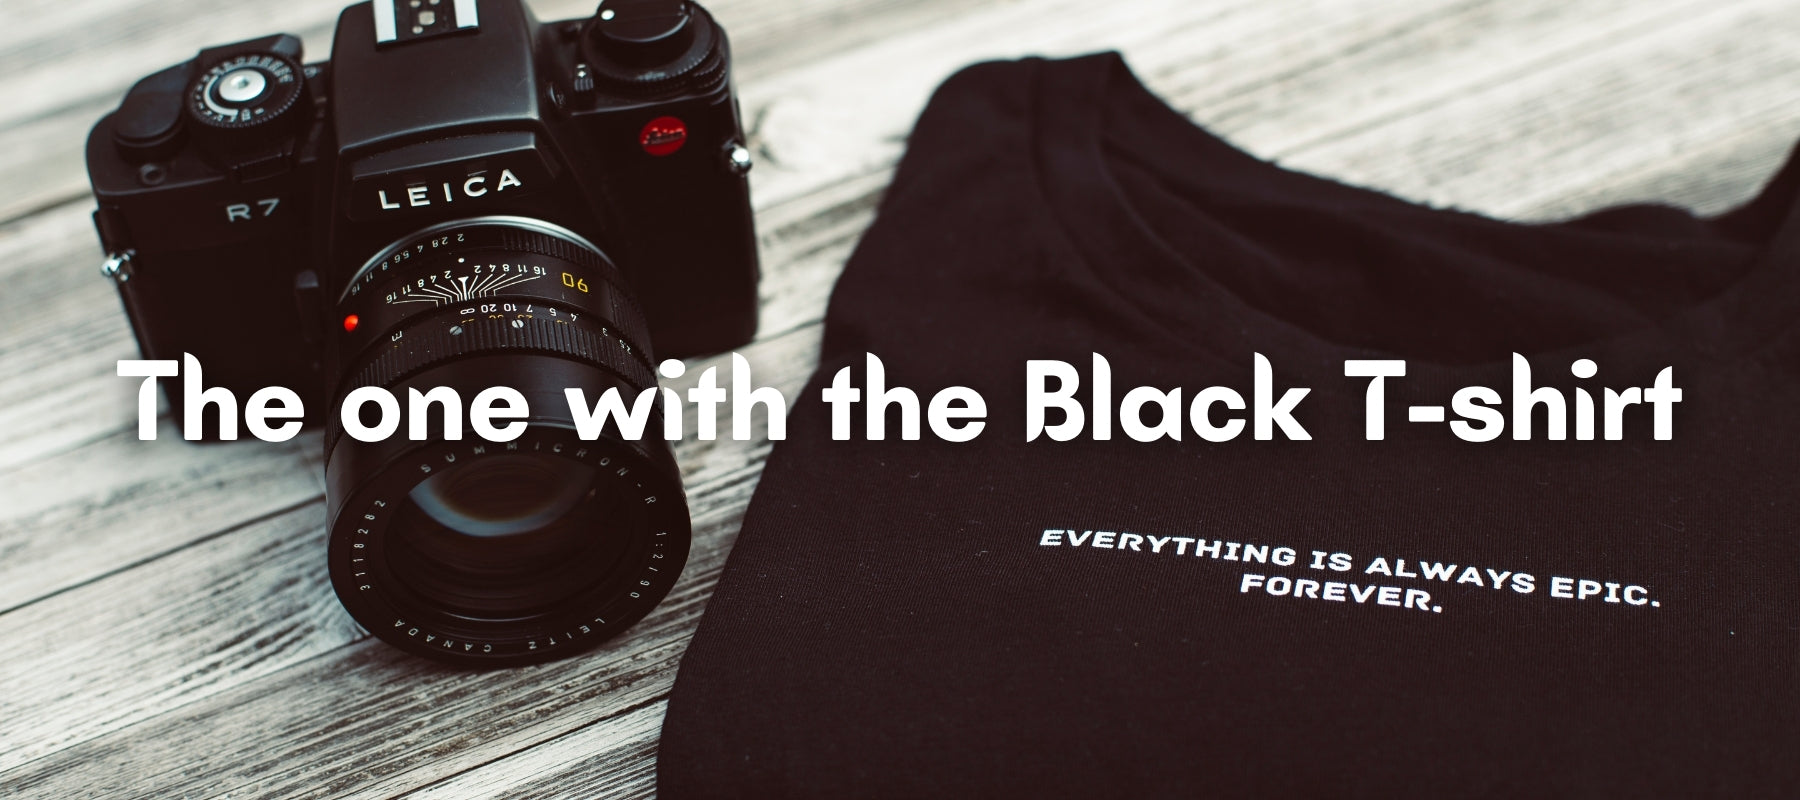 Black T-shirt with camera